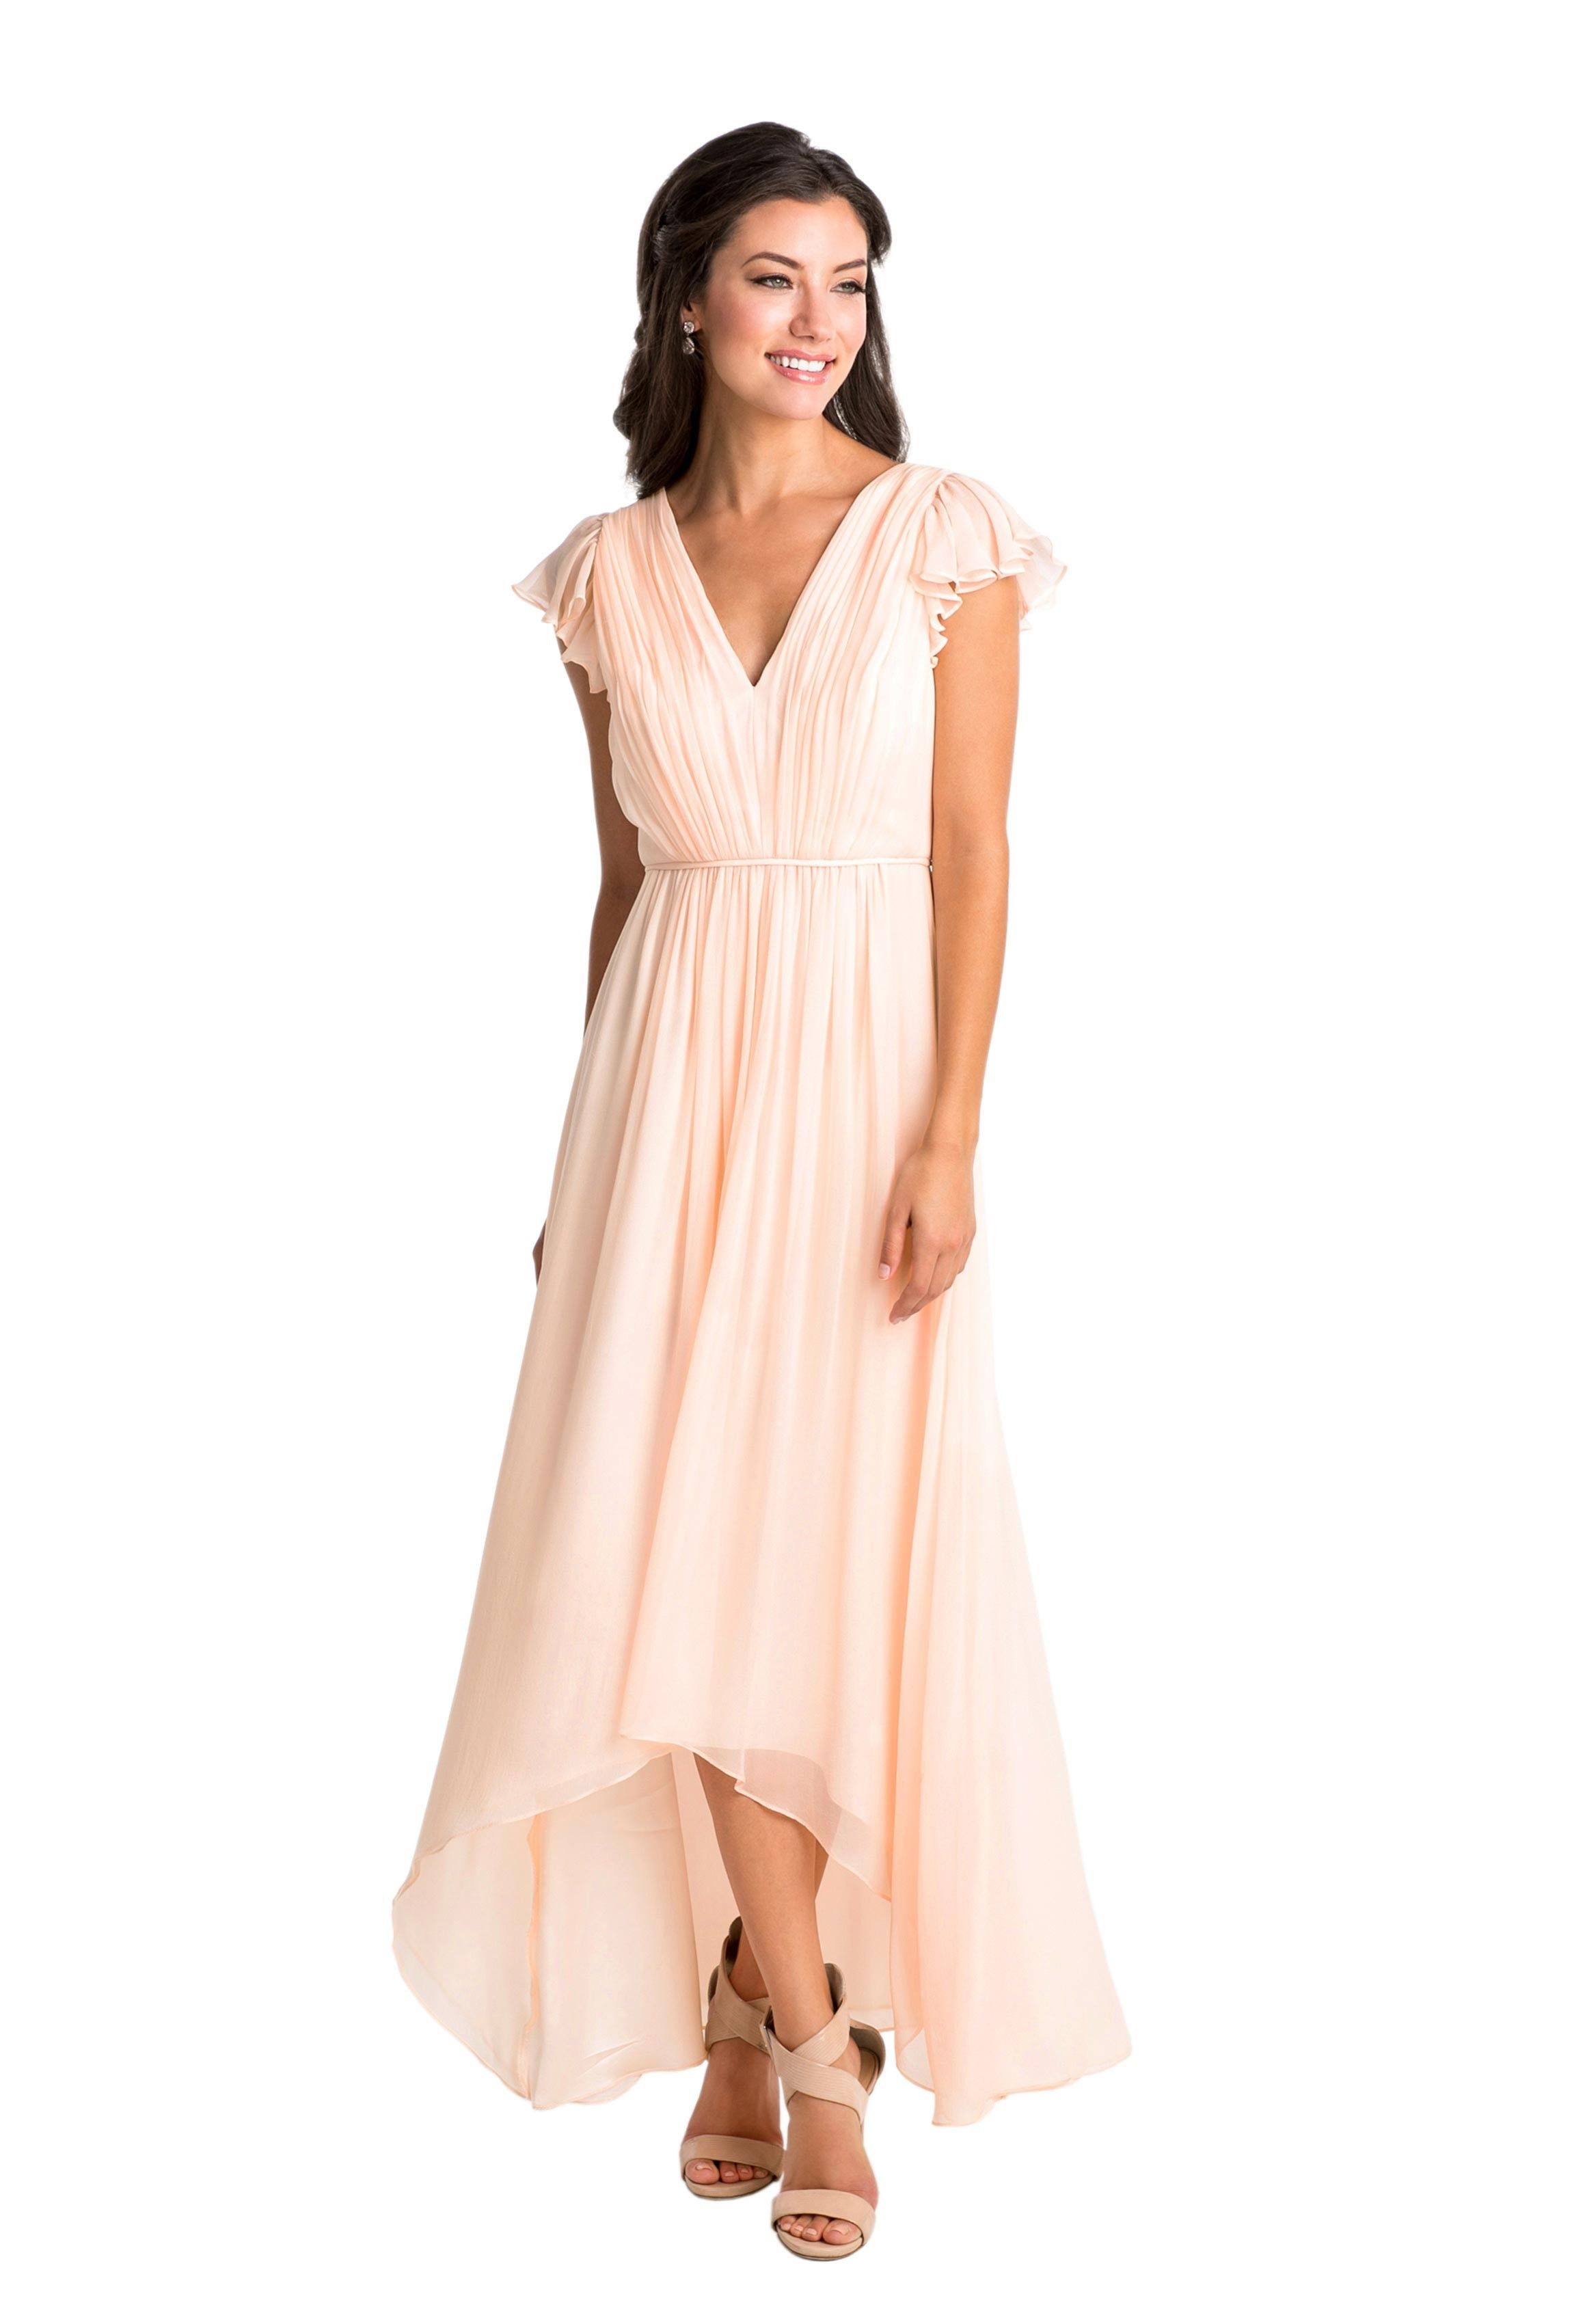 A long, chiffon blush-colored bridesmaid dress with flowing skirts ...